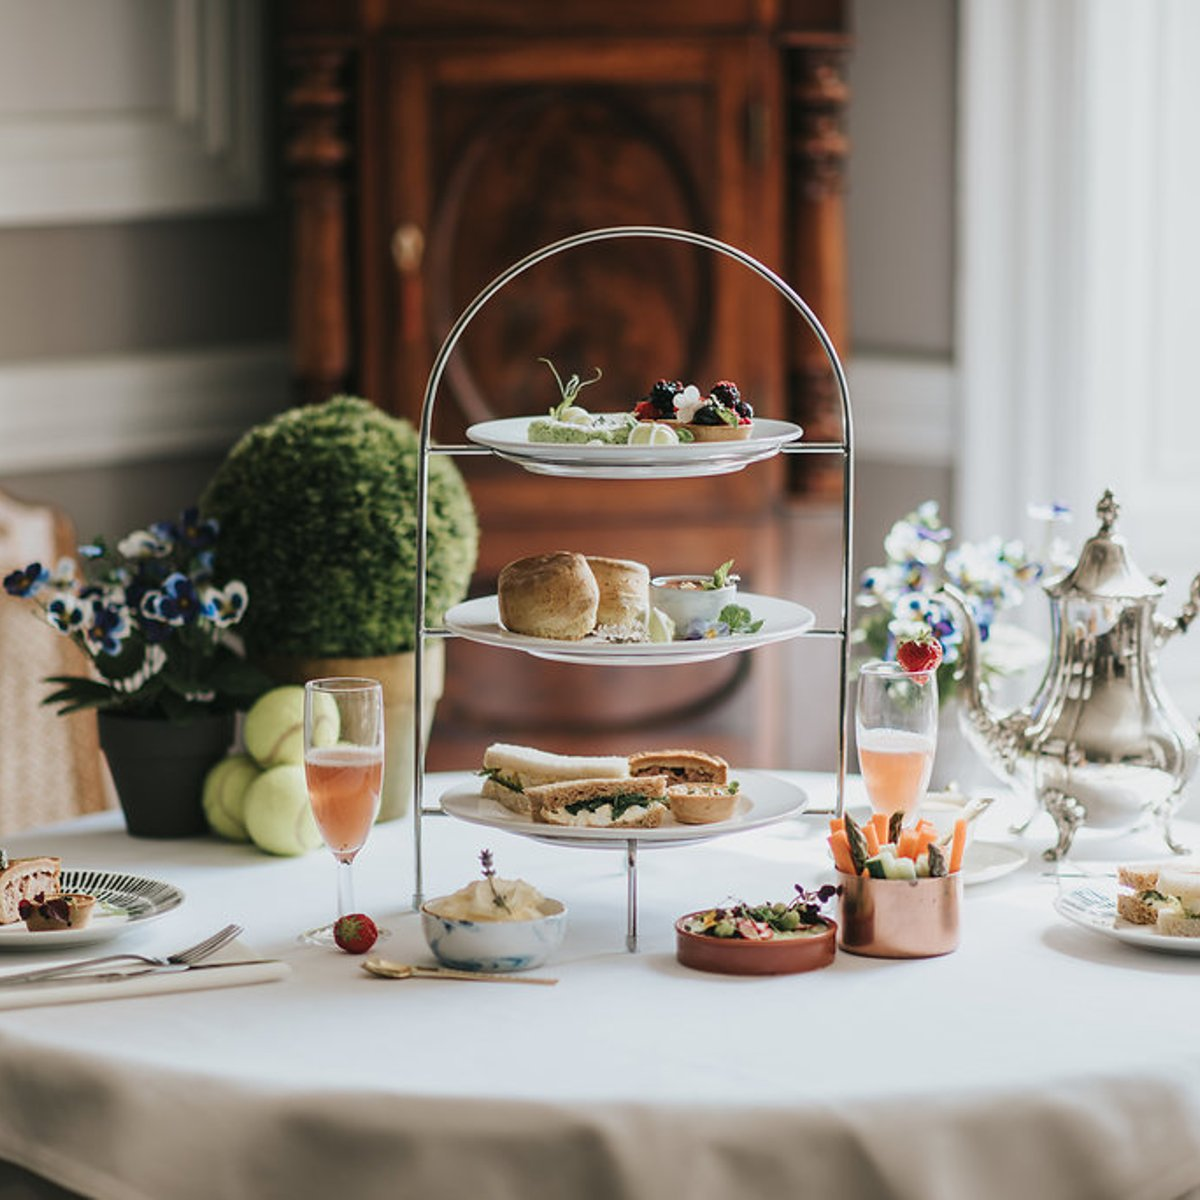 Have you experienced one of our afternoon teas? Then we need your help... The Lincolnshire Life Taste of Excellence Awards 2020 is back and one of the categories we're hoping to be shortlisted for is Best Afternoon Tea. To vote, please click here: https://t.co/8JpPGp98L6 https://t.co/5HuC0IHMr9